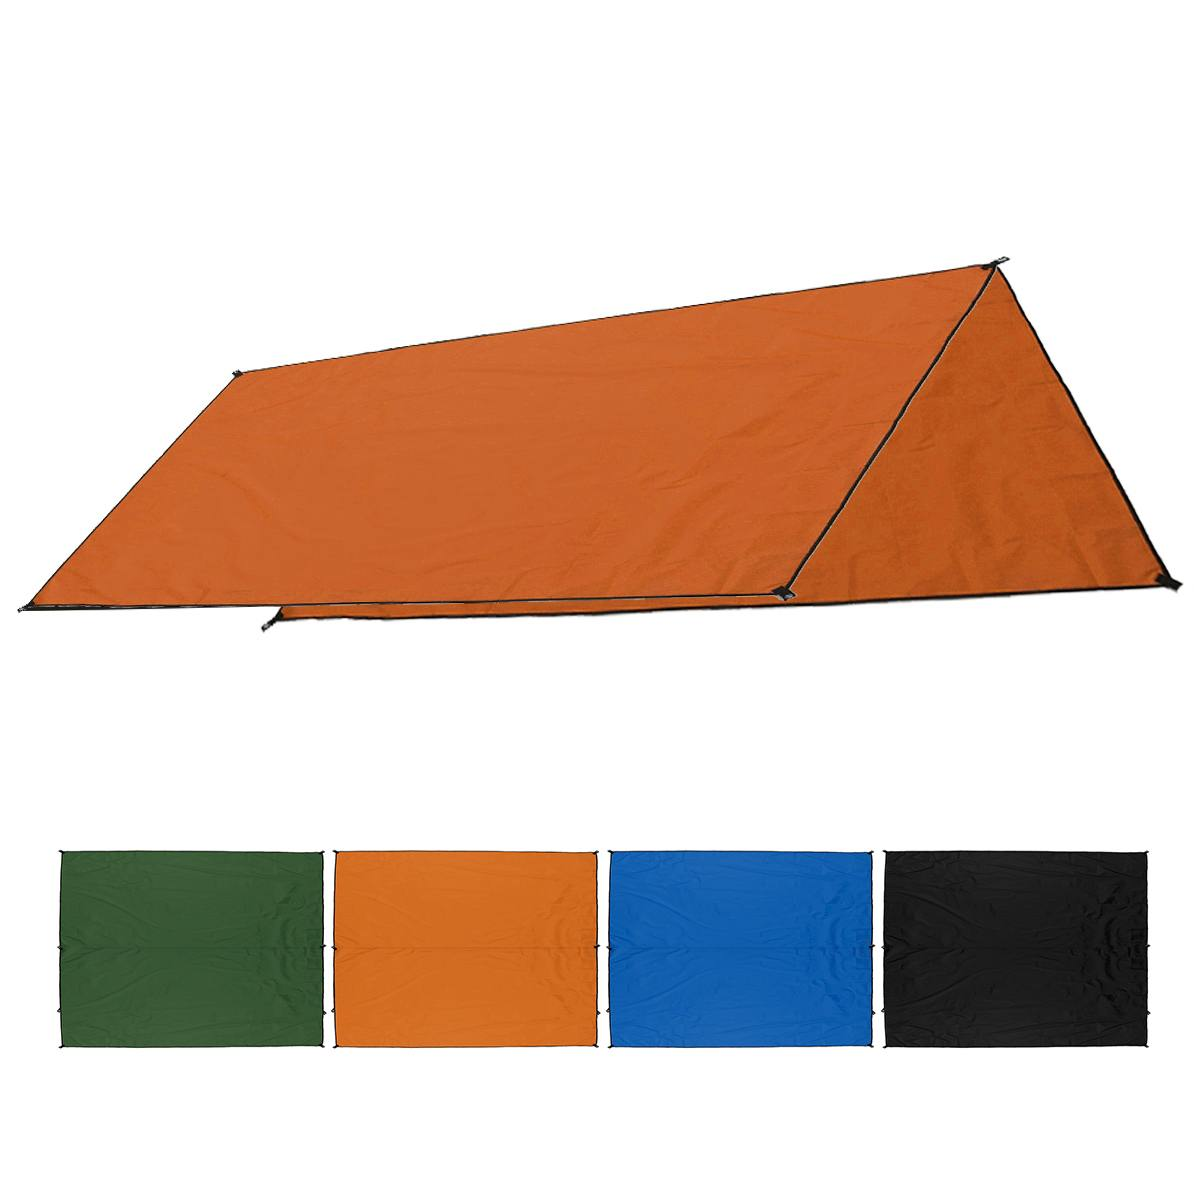 ALI shop ...  ... 33010964848 ... 2 ... Waterproof Tent Shade Beach Sun Shelter Tarp Ultralight UV Garden Awning Canopy Sunshade Outdoor Camping Hammock Rain Fly ...